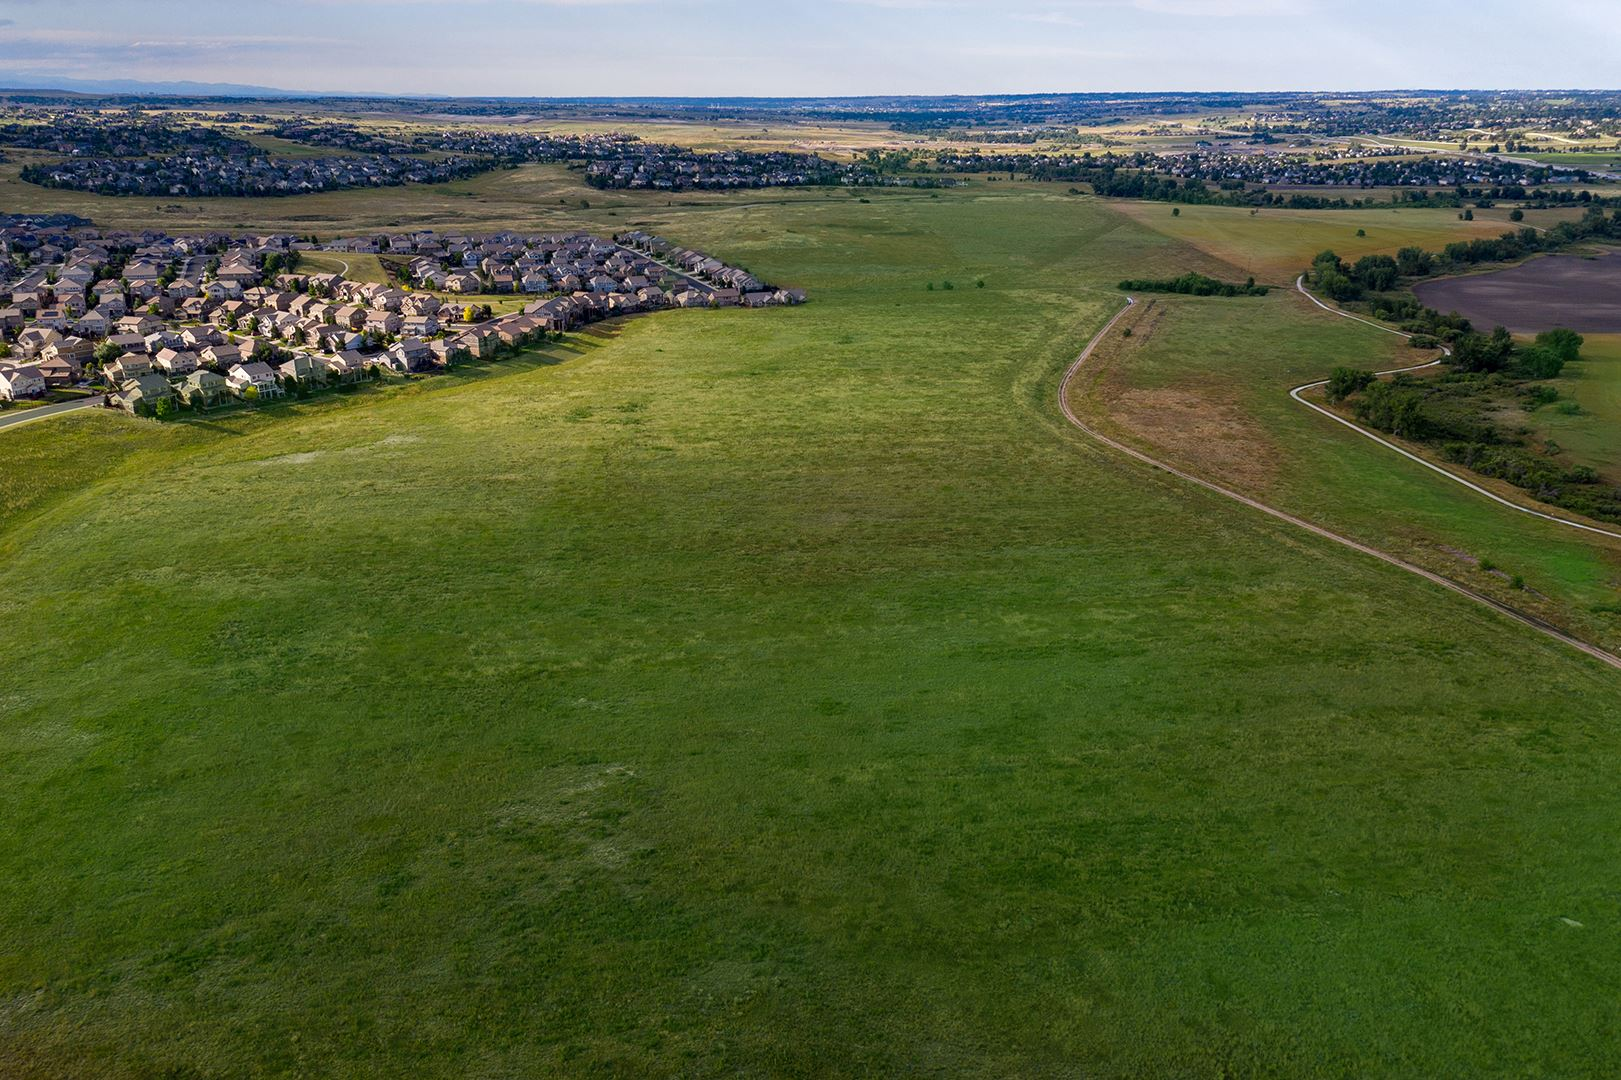 cobblestone ranch drone photo